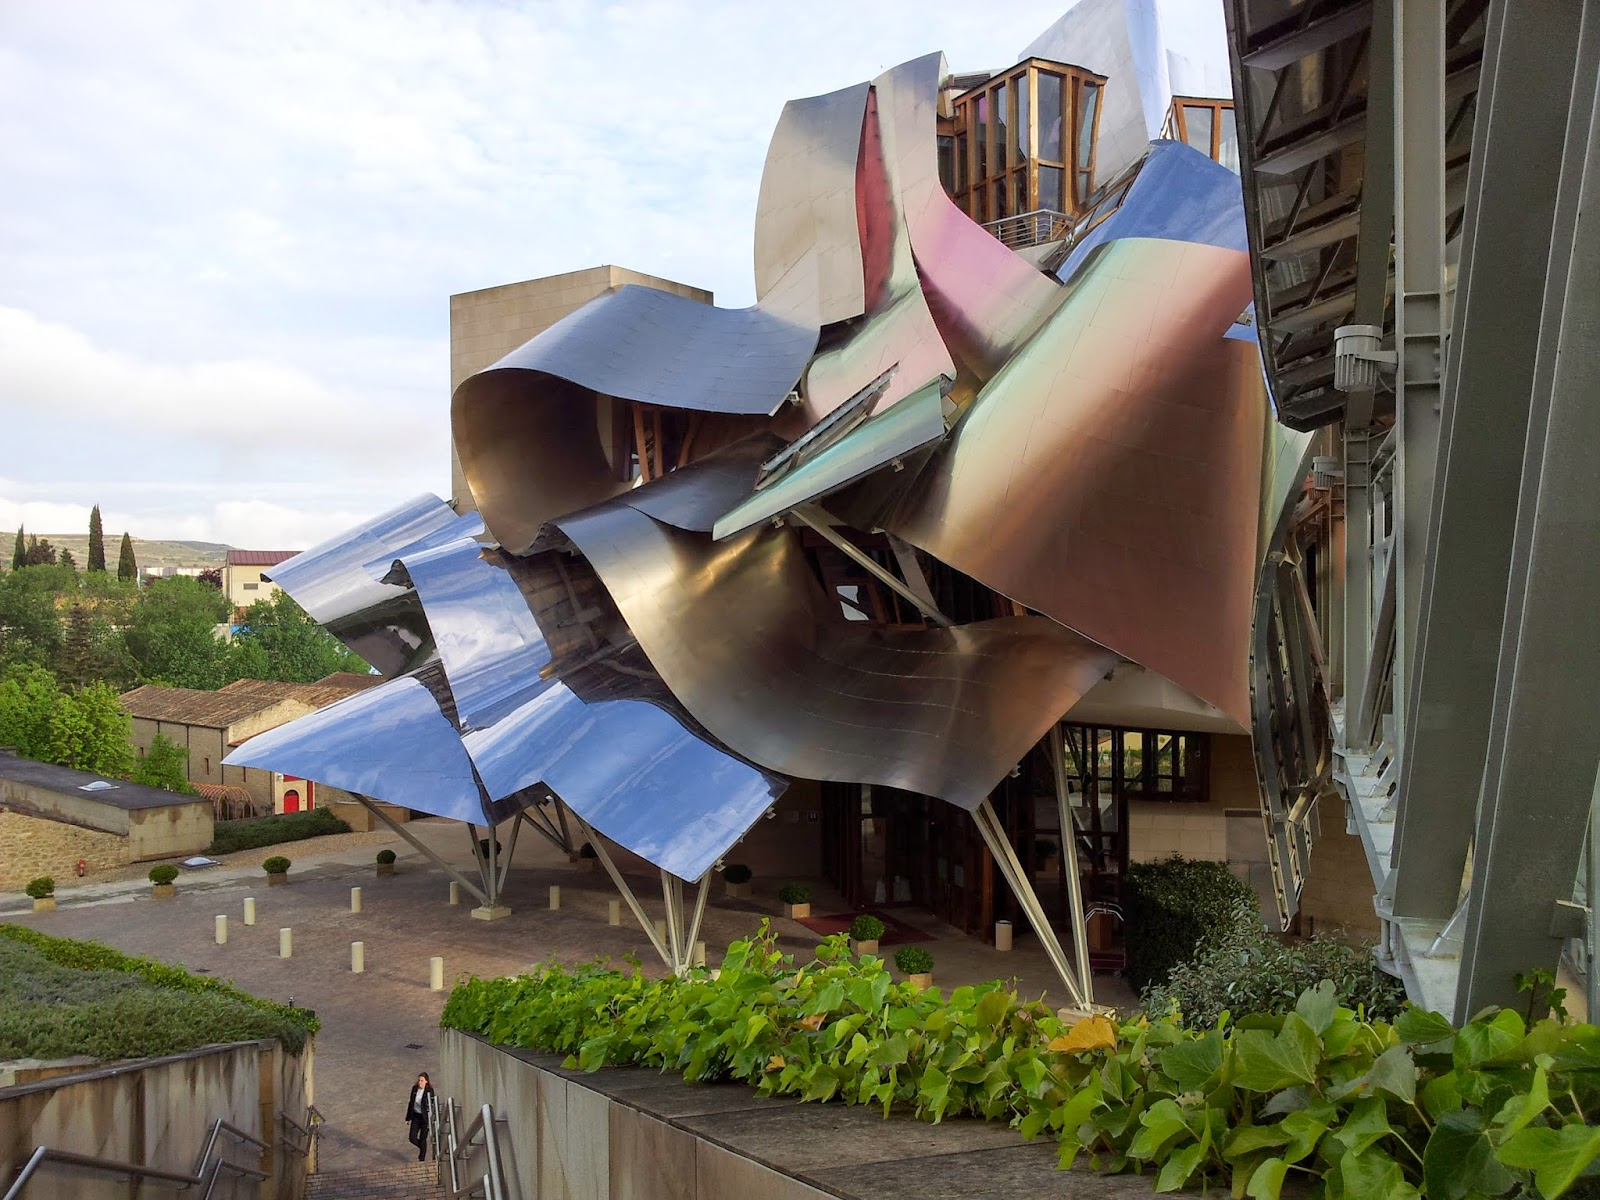 Tour in Rioja - Marques de Riscal Winery visit